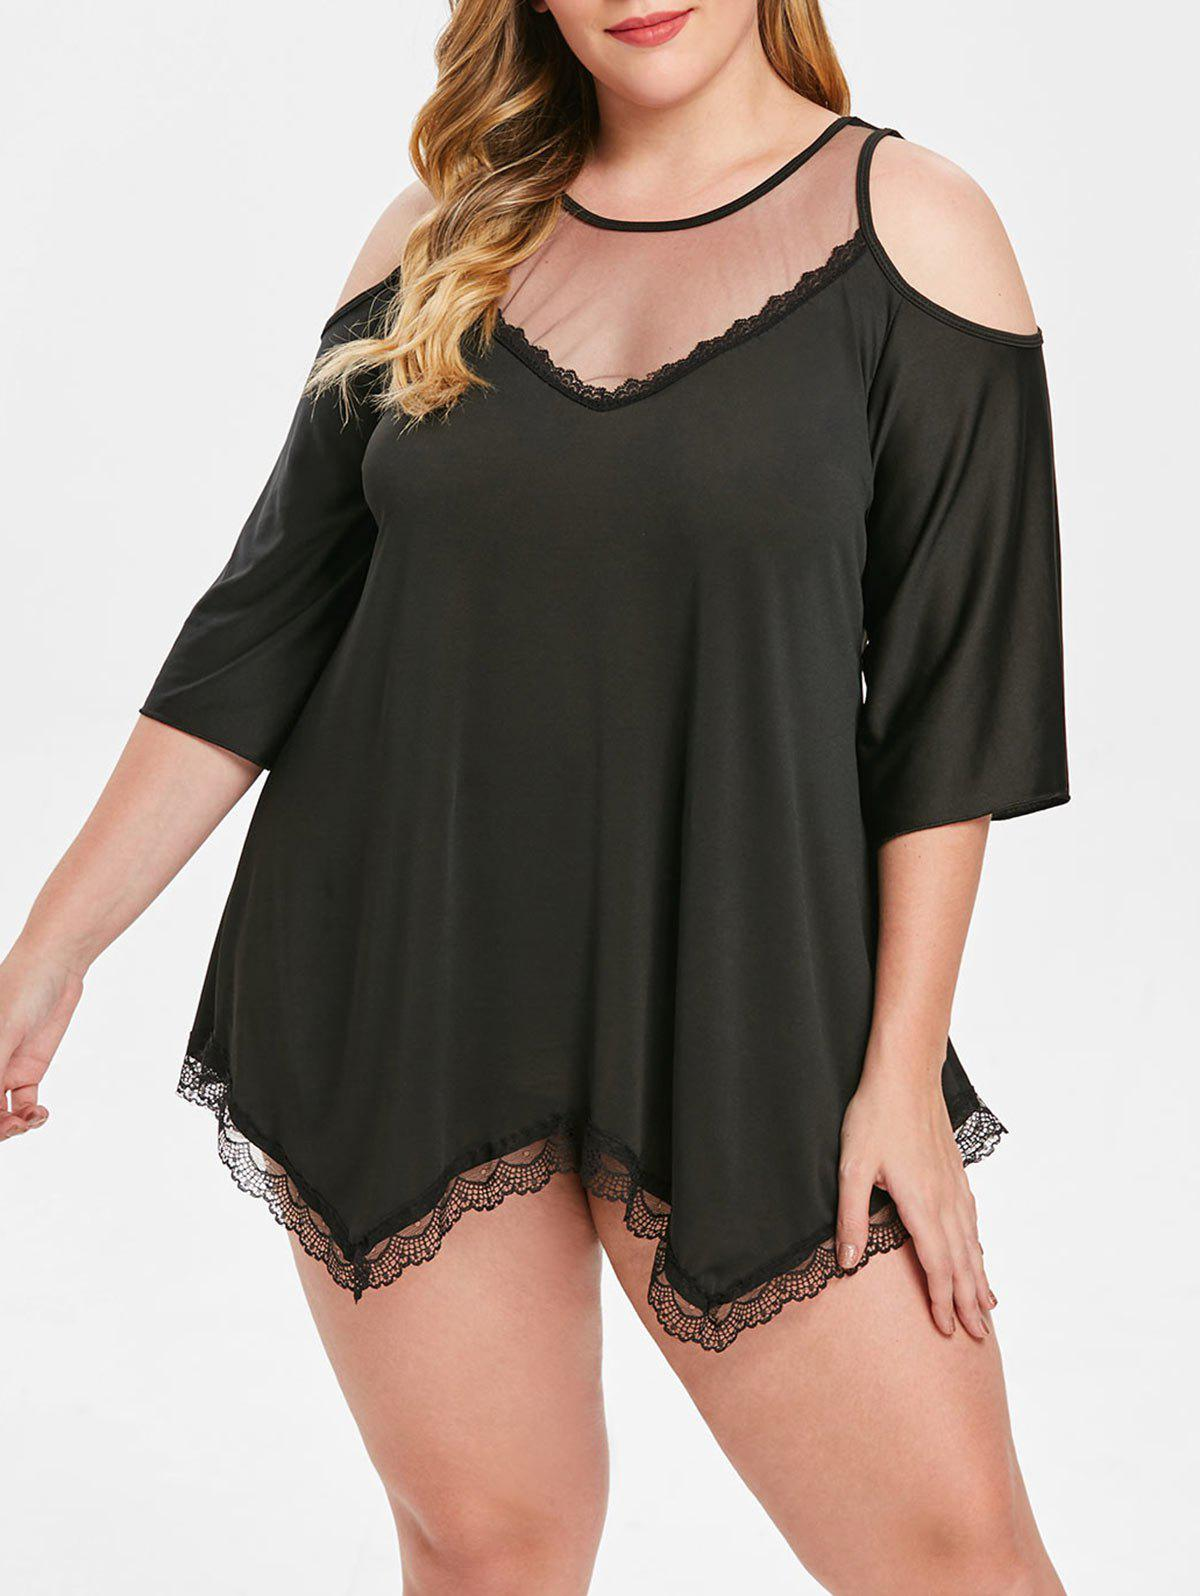 New Open Shoulder Plus Size See Through Top